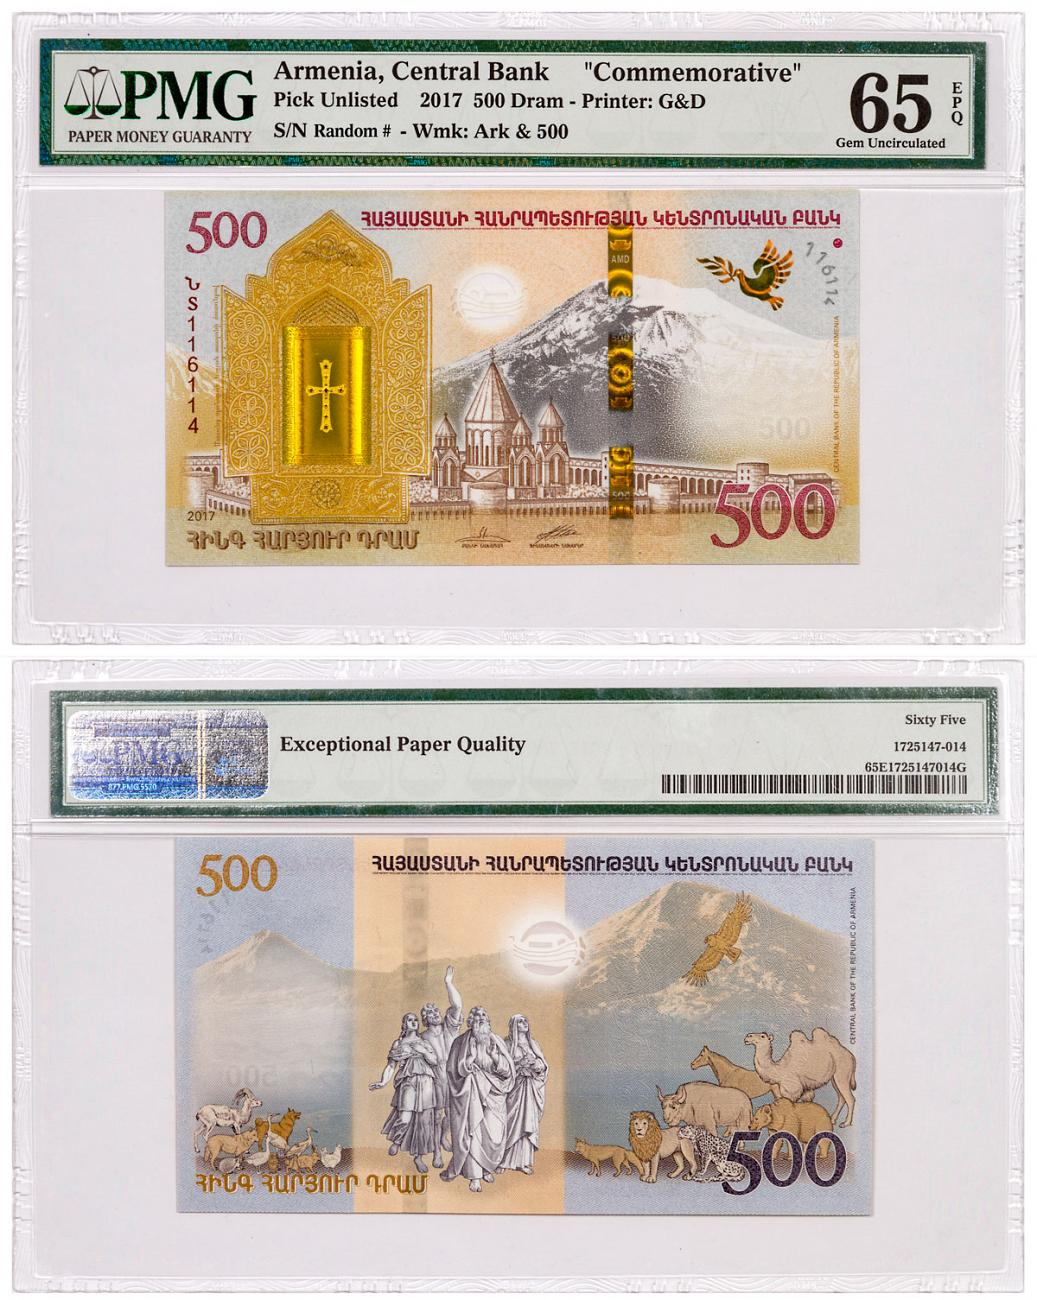 2017 Armenia Central Bank Commemorative 500 Dram Note PMG Gem Unc 65 EPQ